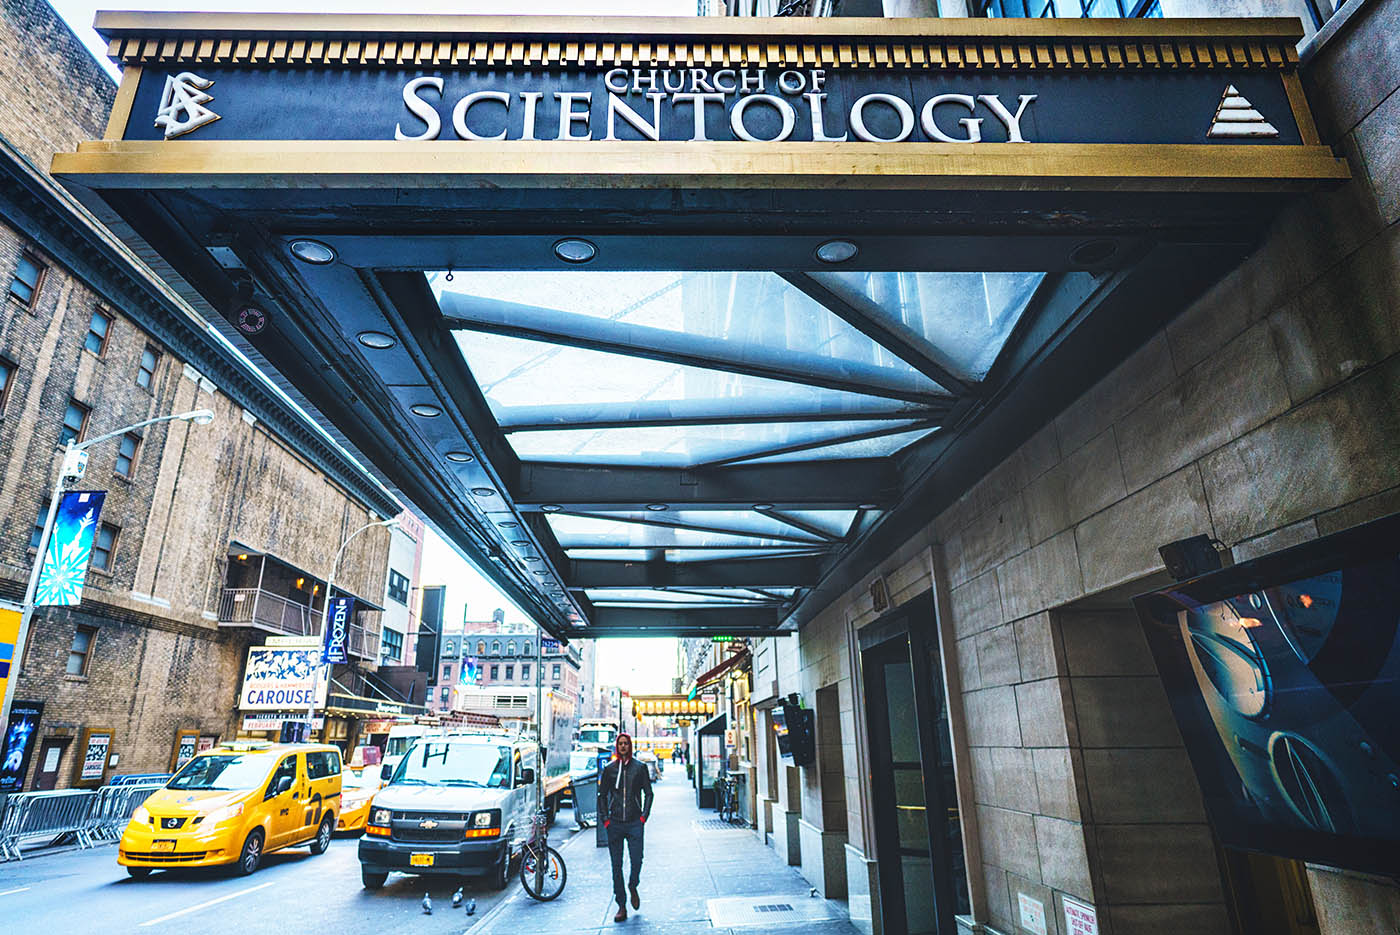 New York Scientology